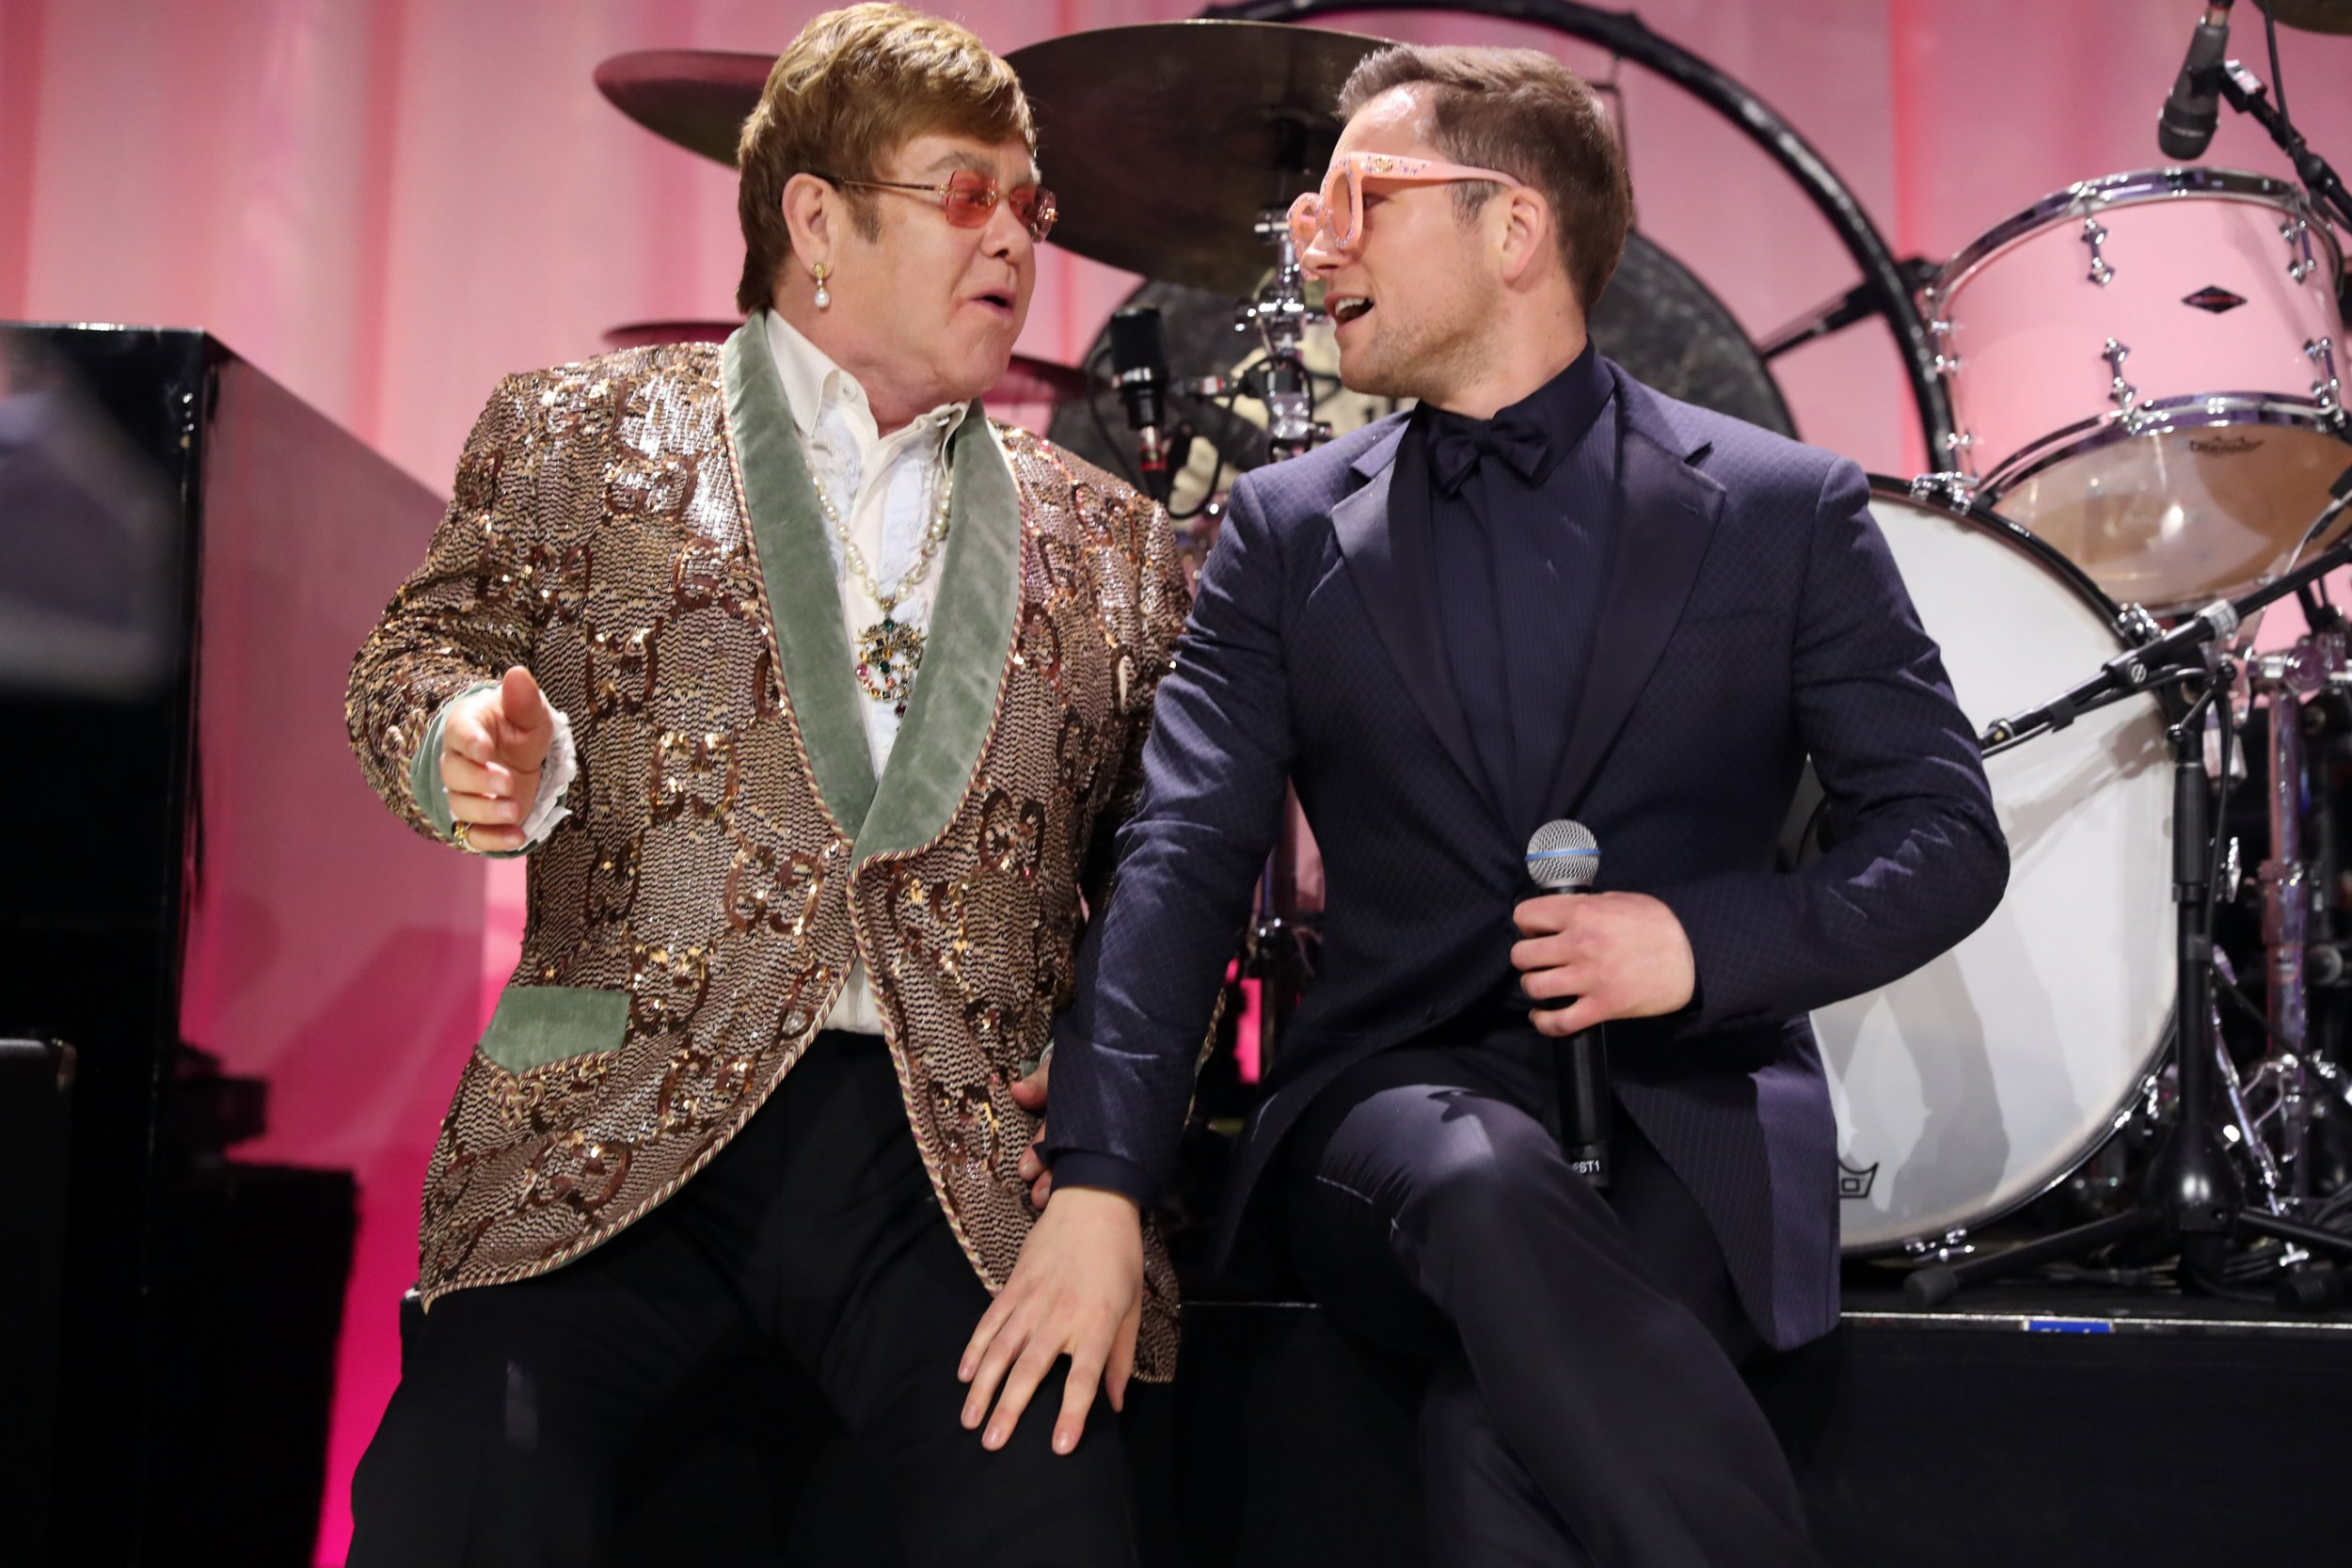 WEST HOLLYWOOD, CA - FEBRUARY 24: Sir Elton John and Taron Egerton perform onstage during a 27th annual Elton John AIDS Foundation Academy Awards Viewing Party sponsored by IMDb and Neuro Drinks celebrating EJAF and a 91st Academy Awards on Feb 24, 2019 in West Hollywood, California. (Photo by Rich Fury/Getty Images for EJAF)